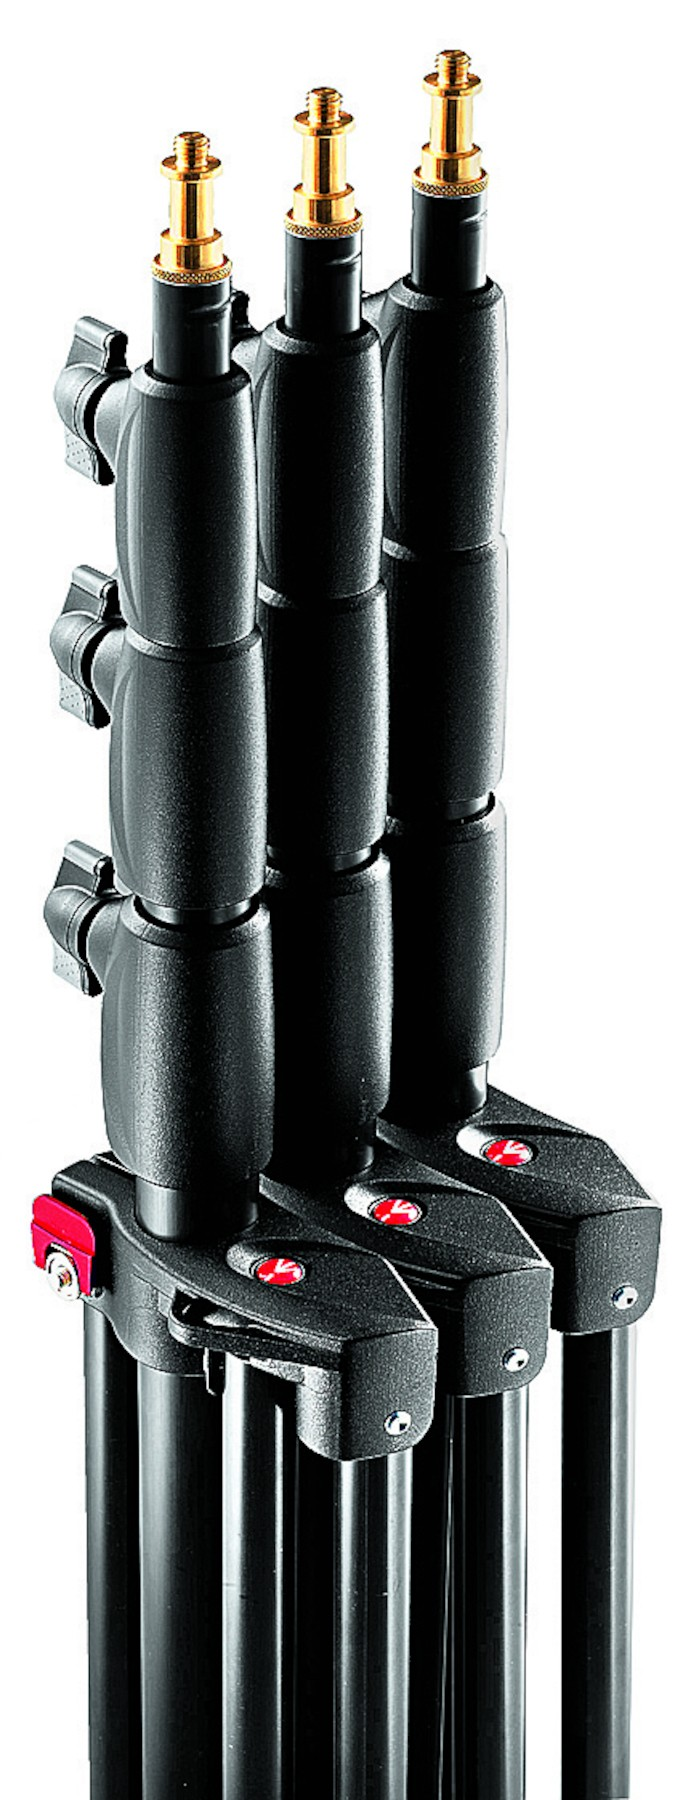 Kit 3 pies de estudio neumáticos Manfrotto Photo Master Stand Air Cushioned